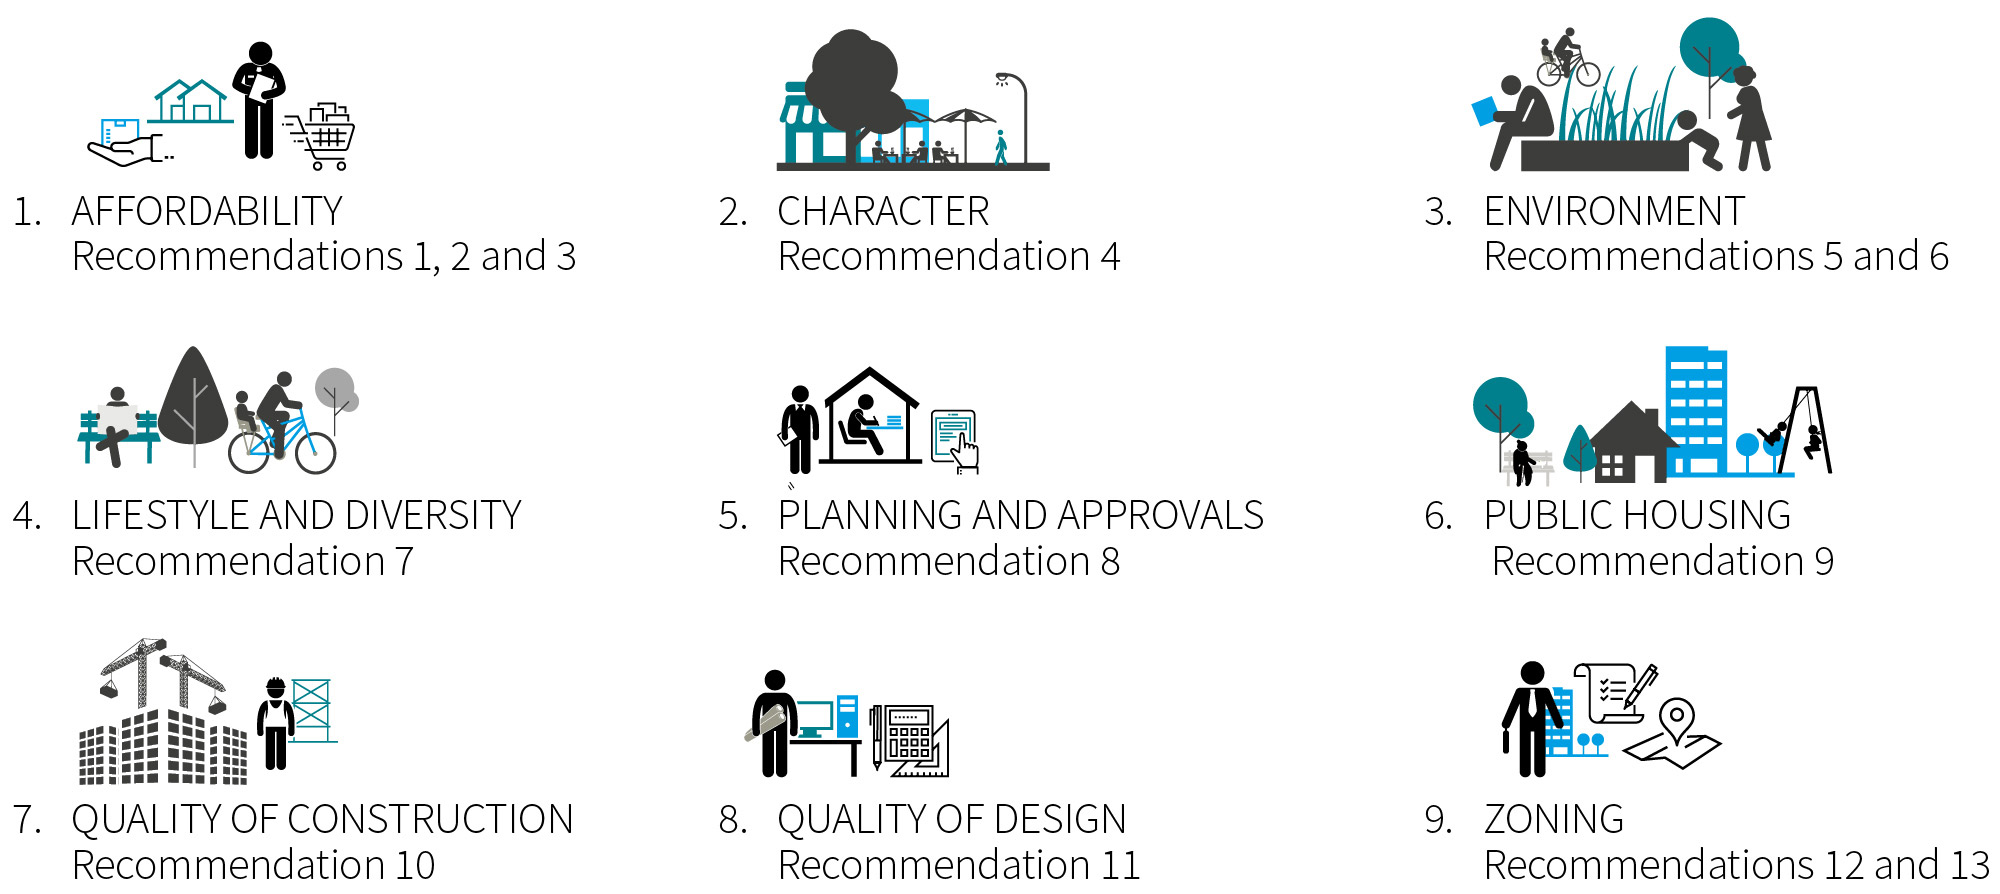 The Collaboration Hub provided 13 recommendations in the nine themes of Affordability, character, environment, lifestyle and diversity, planning and approvals, public housing, quality of construction, quality of design, zoning.